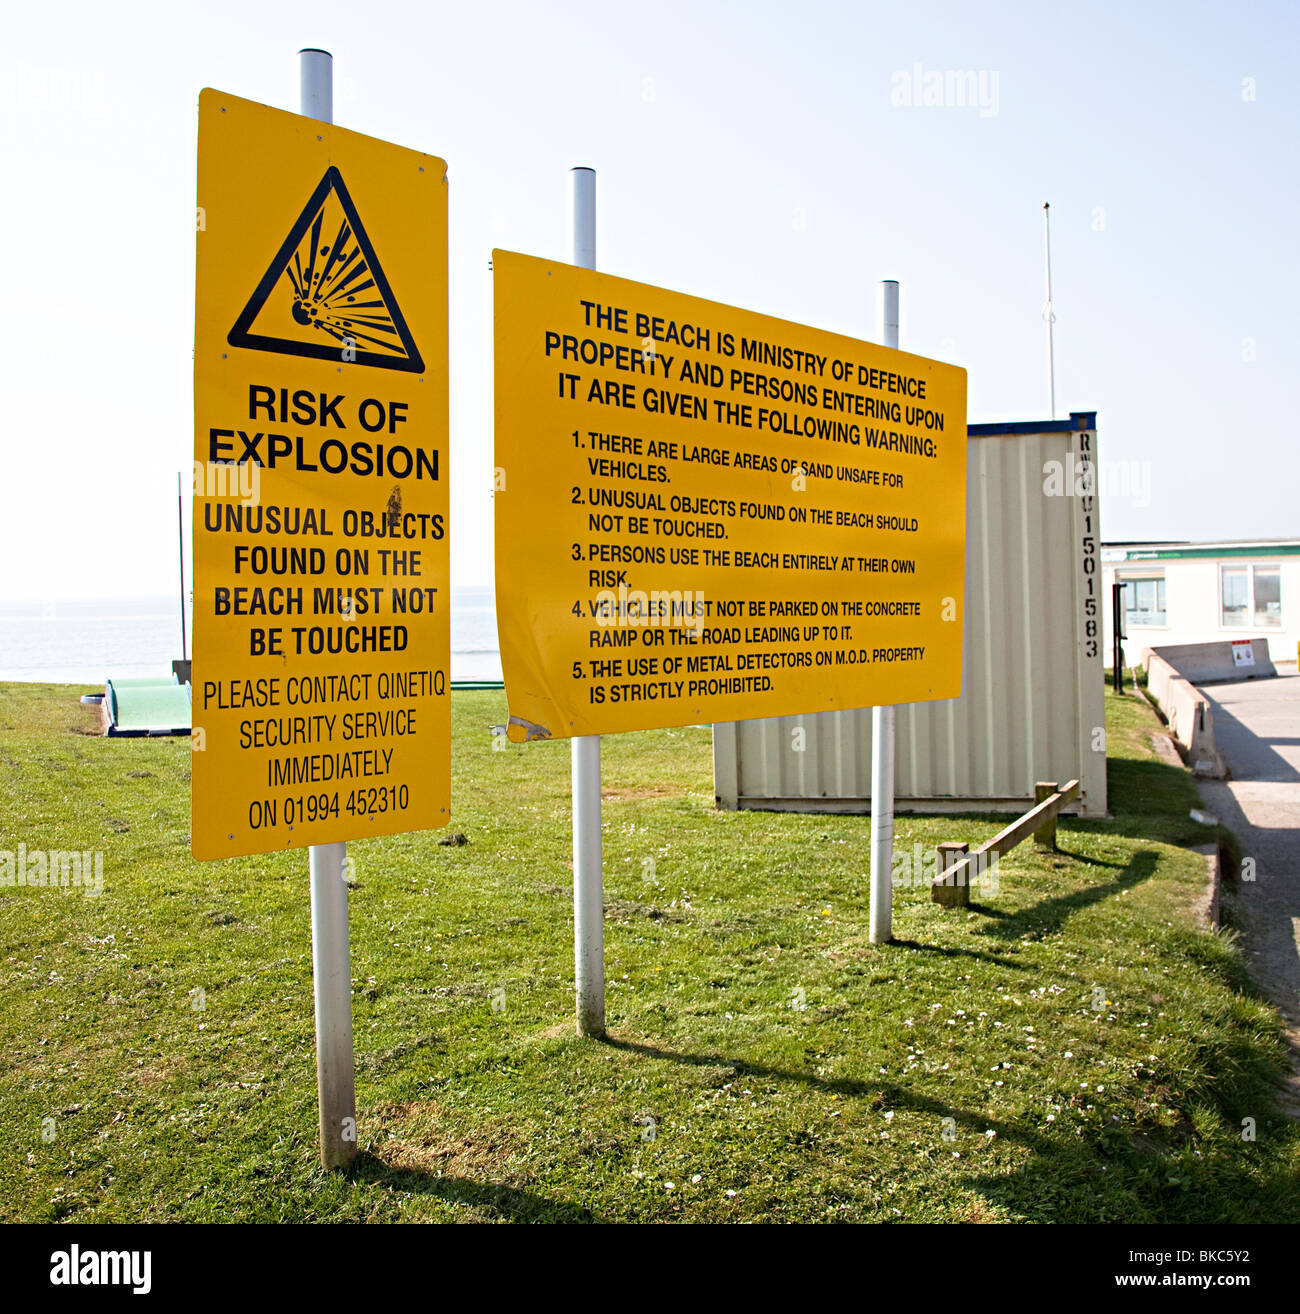 Warning signs for explosives found on beach at Pendine sands with metal detector use prohibited Wales UK - Stock Image